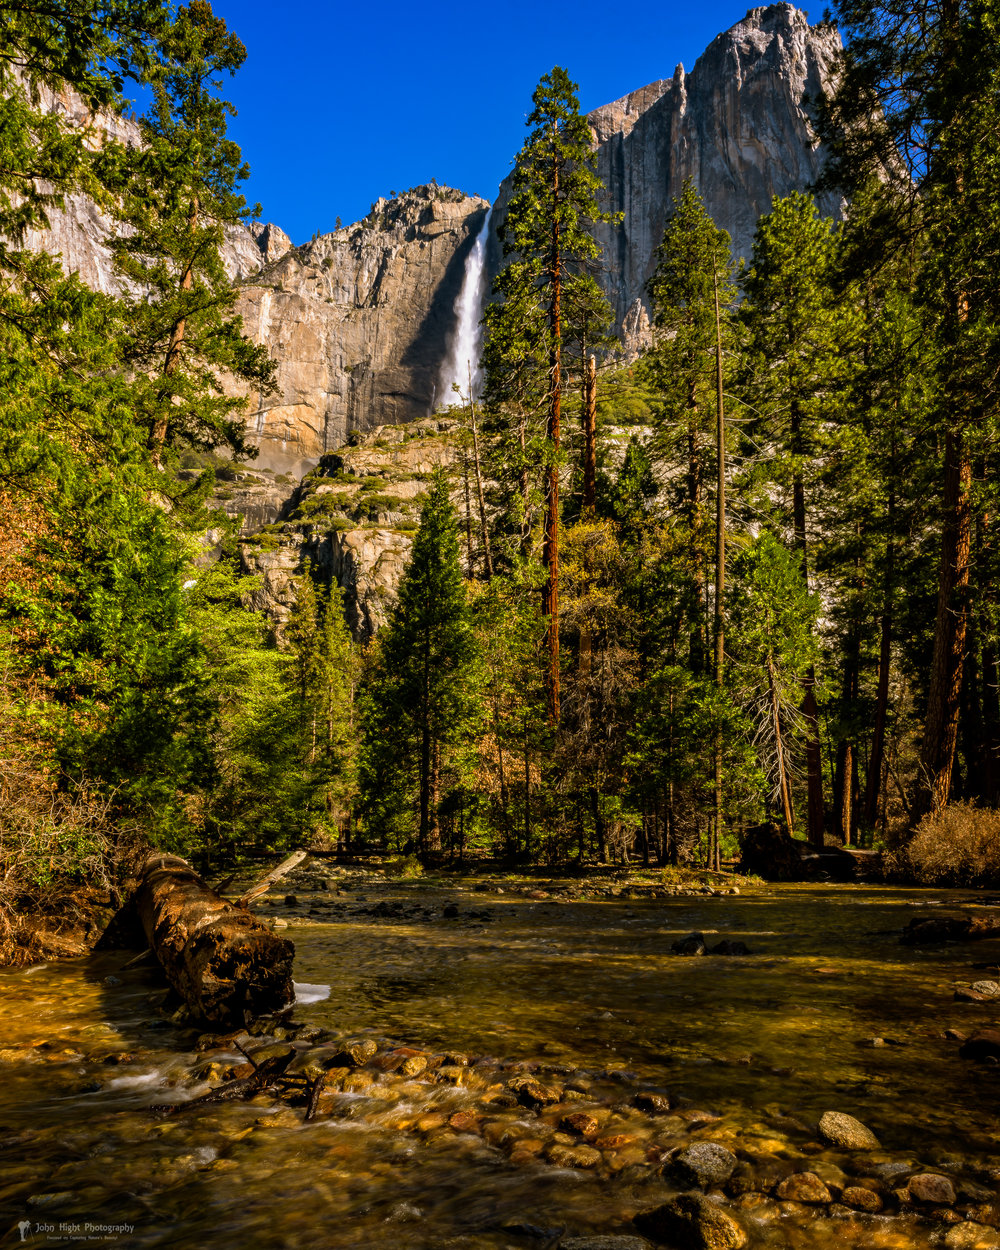 Upper Yosemite Falls from Yosemite Creek